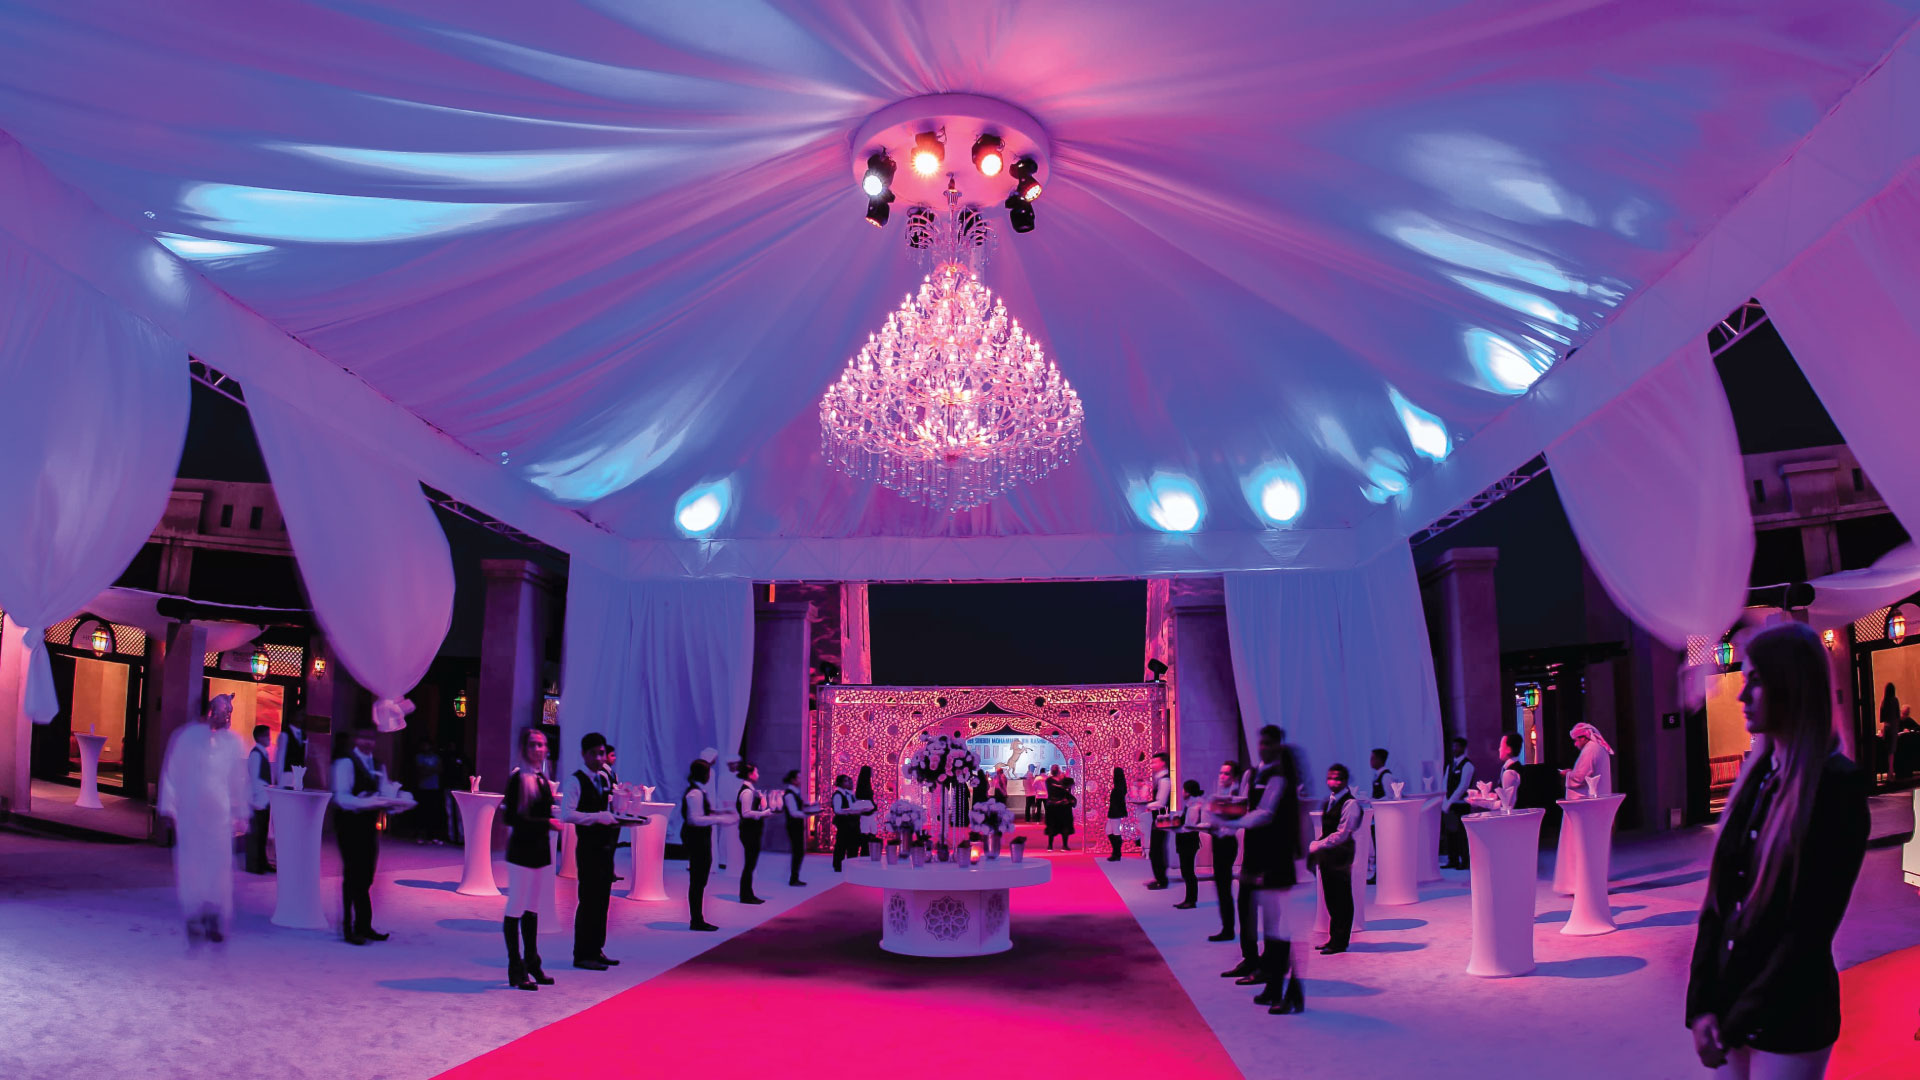 Event management companies – How to start one